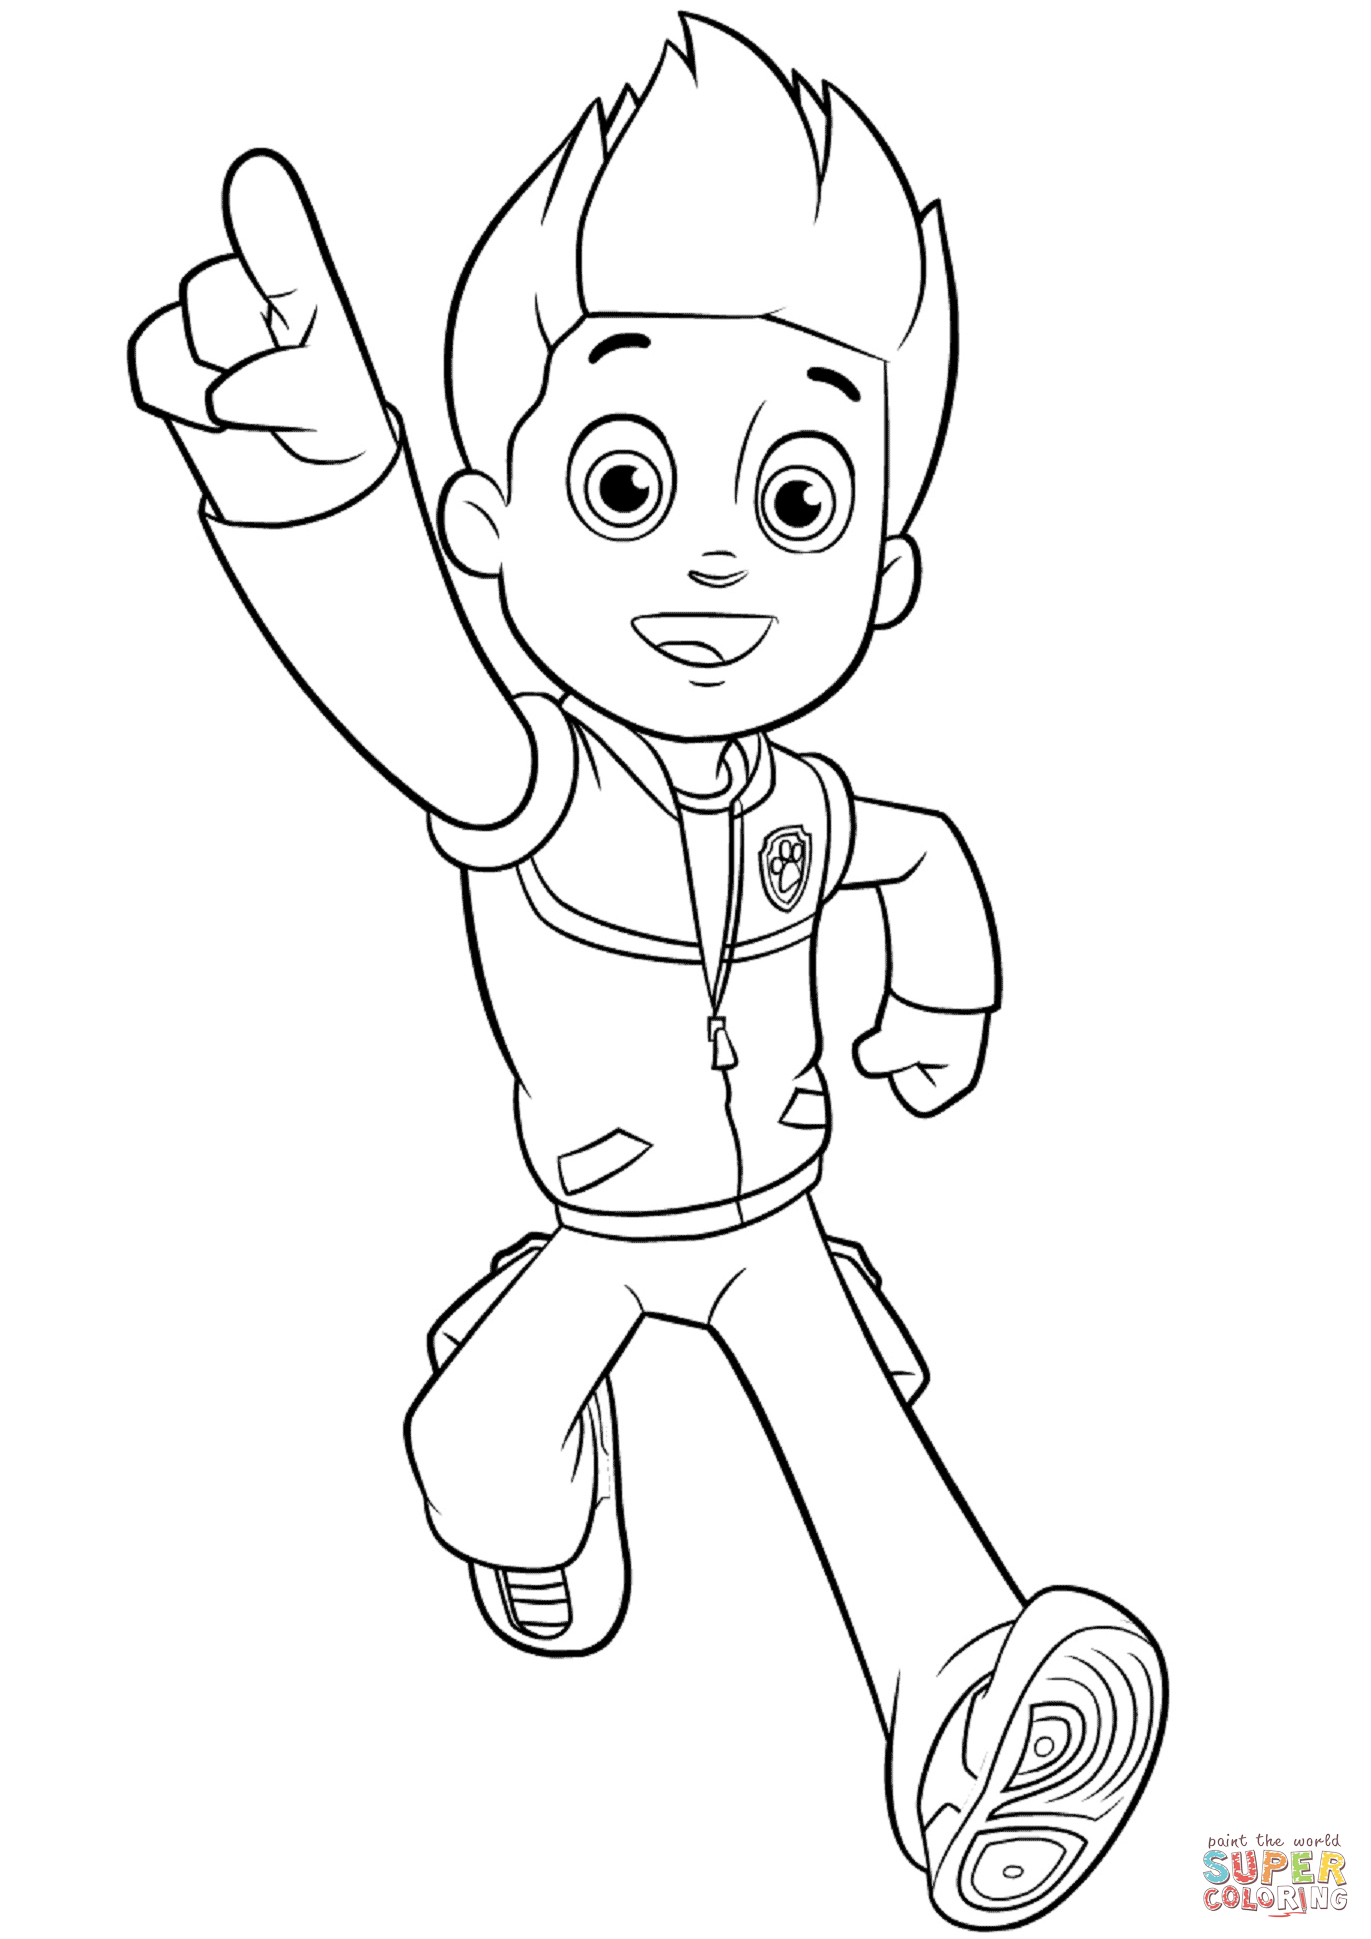 Paw Patrol Ryder Super Coloring In 2020 Paw Patrol Coloring